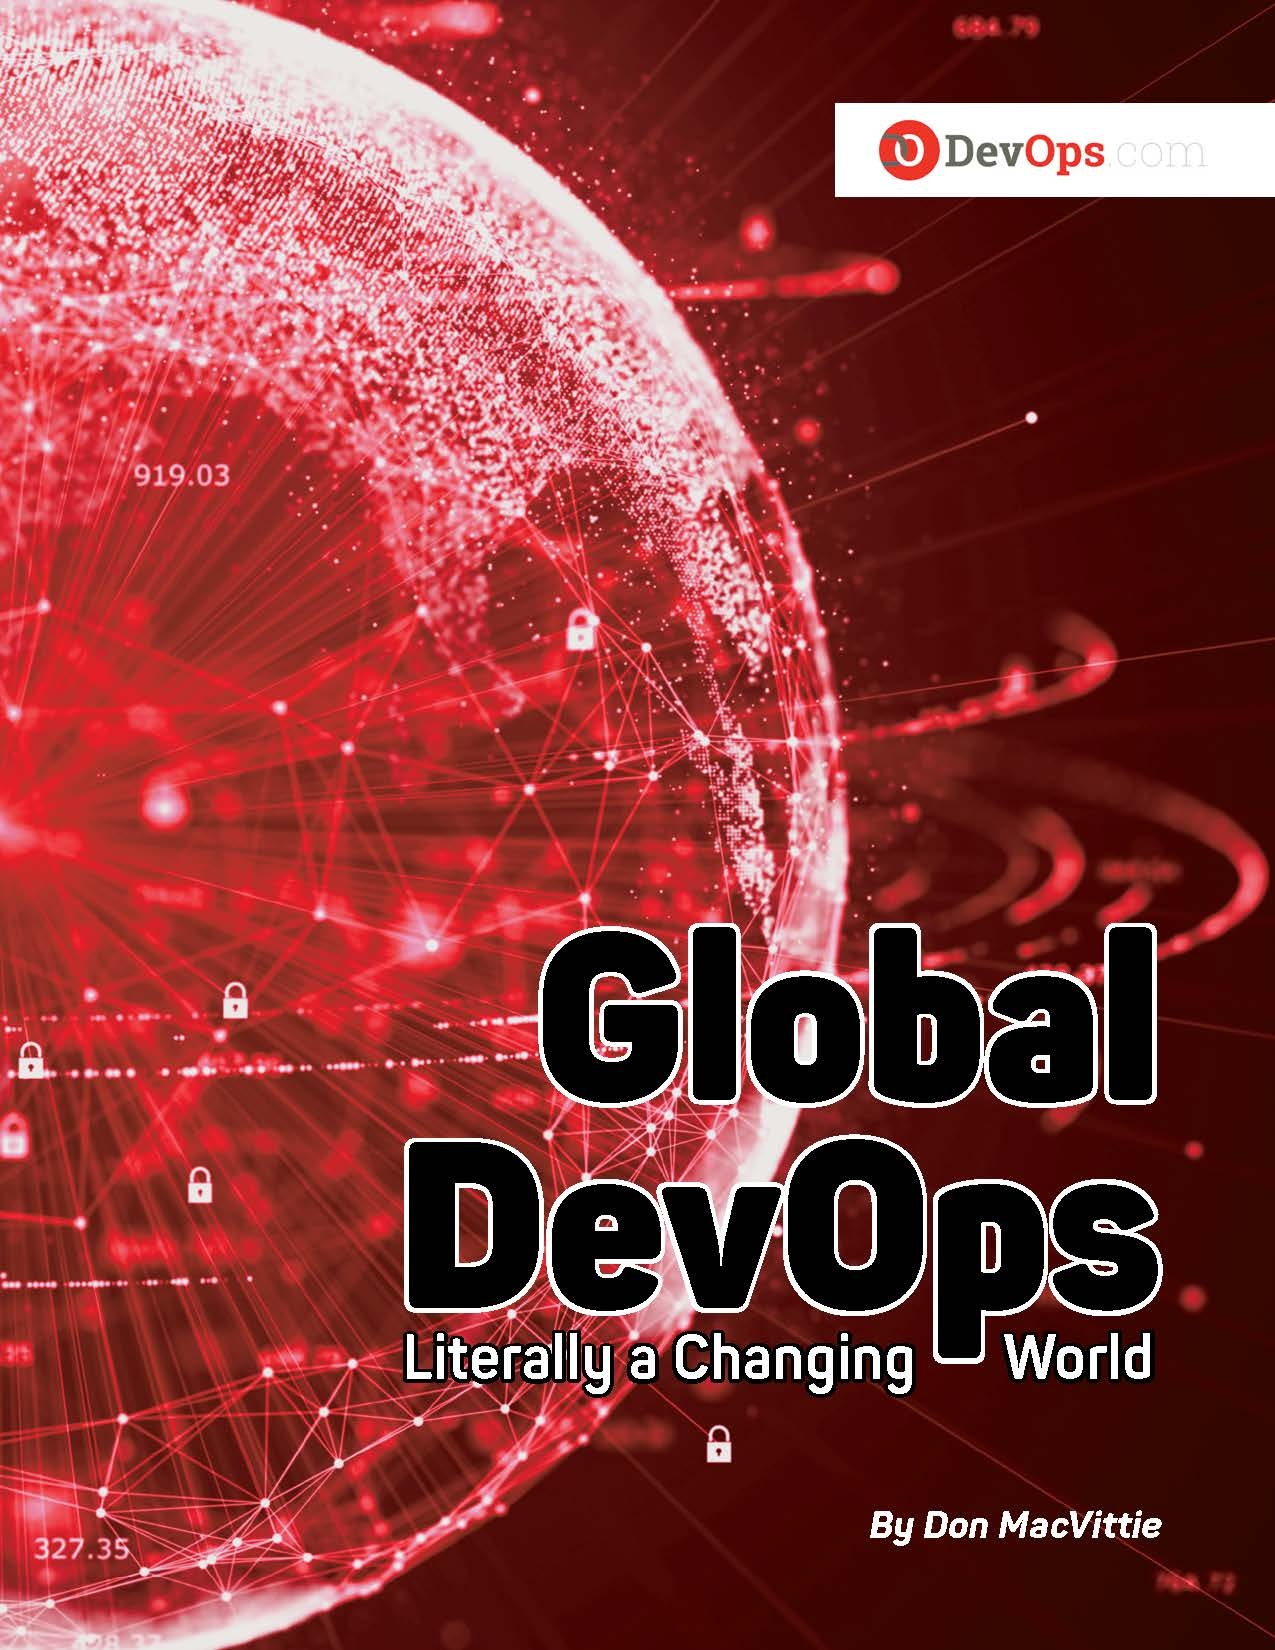 Global DevOps: Literally a Changing World